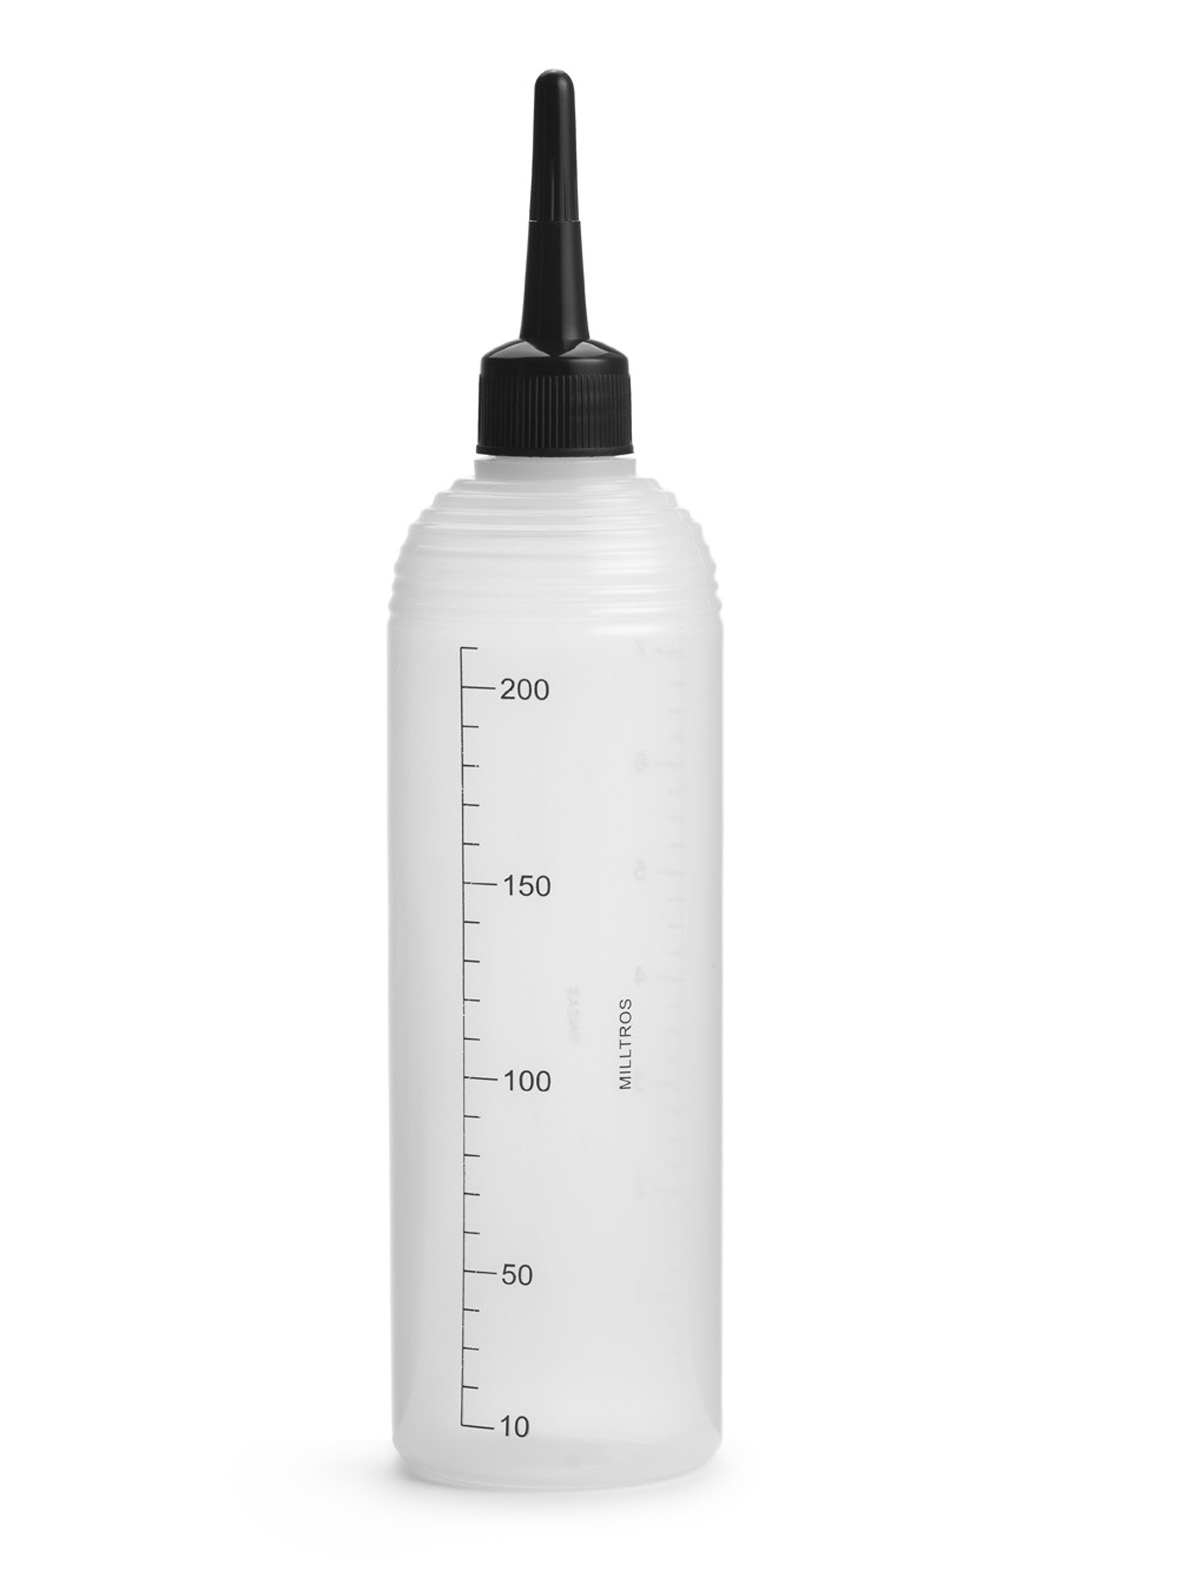 BraveHead Application Bottle 9314 - aplikační láhev, 200 ml